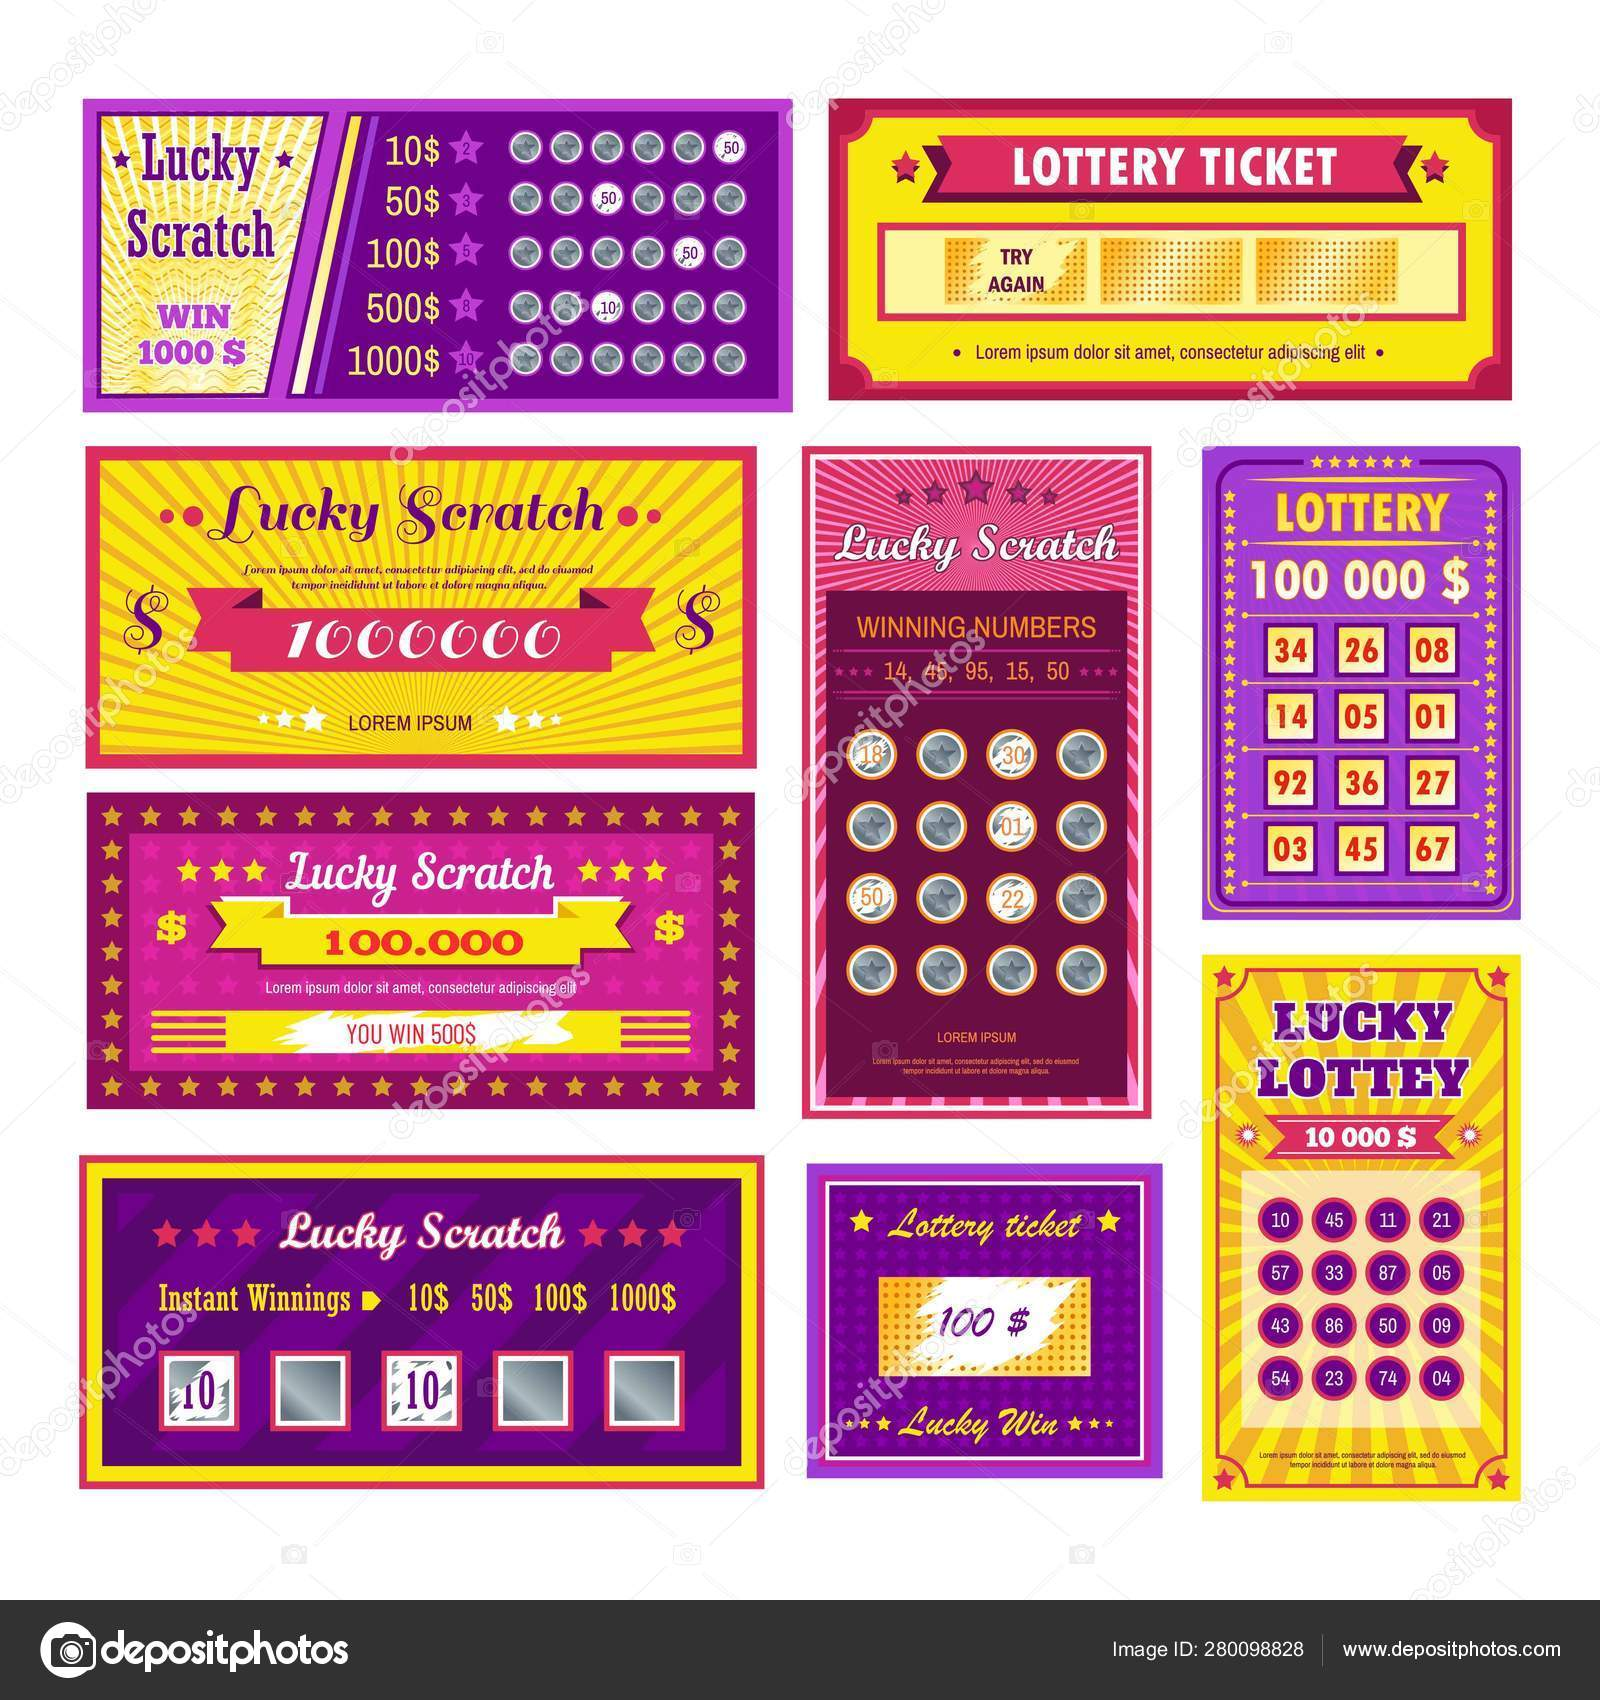 Lottery tickets lucky scratch bingo gambling and winning money